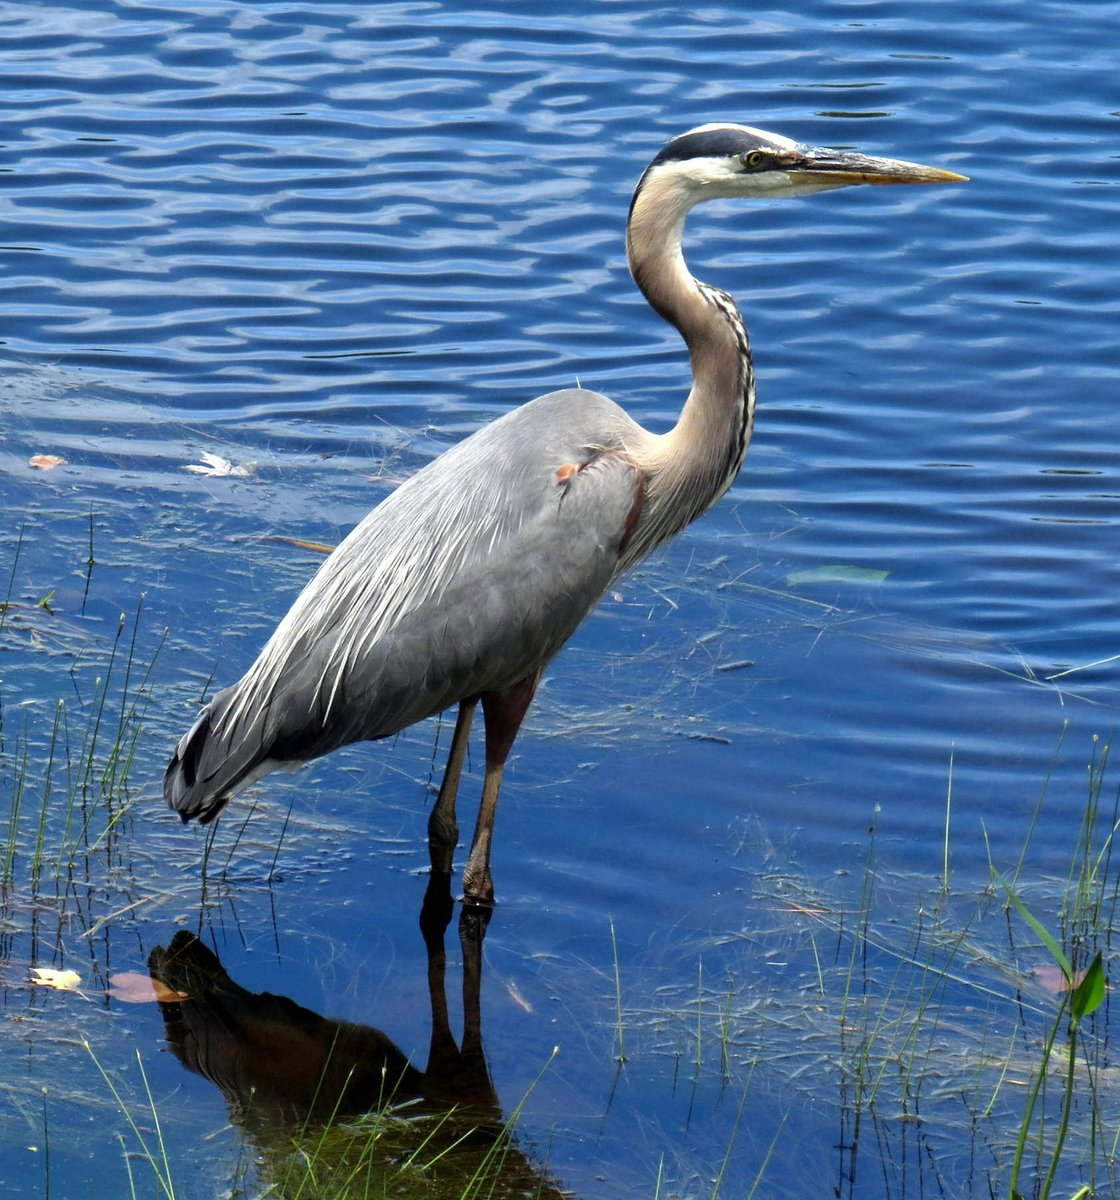 8. Great Blue Heron